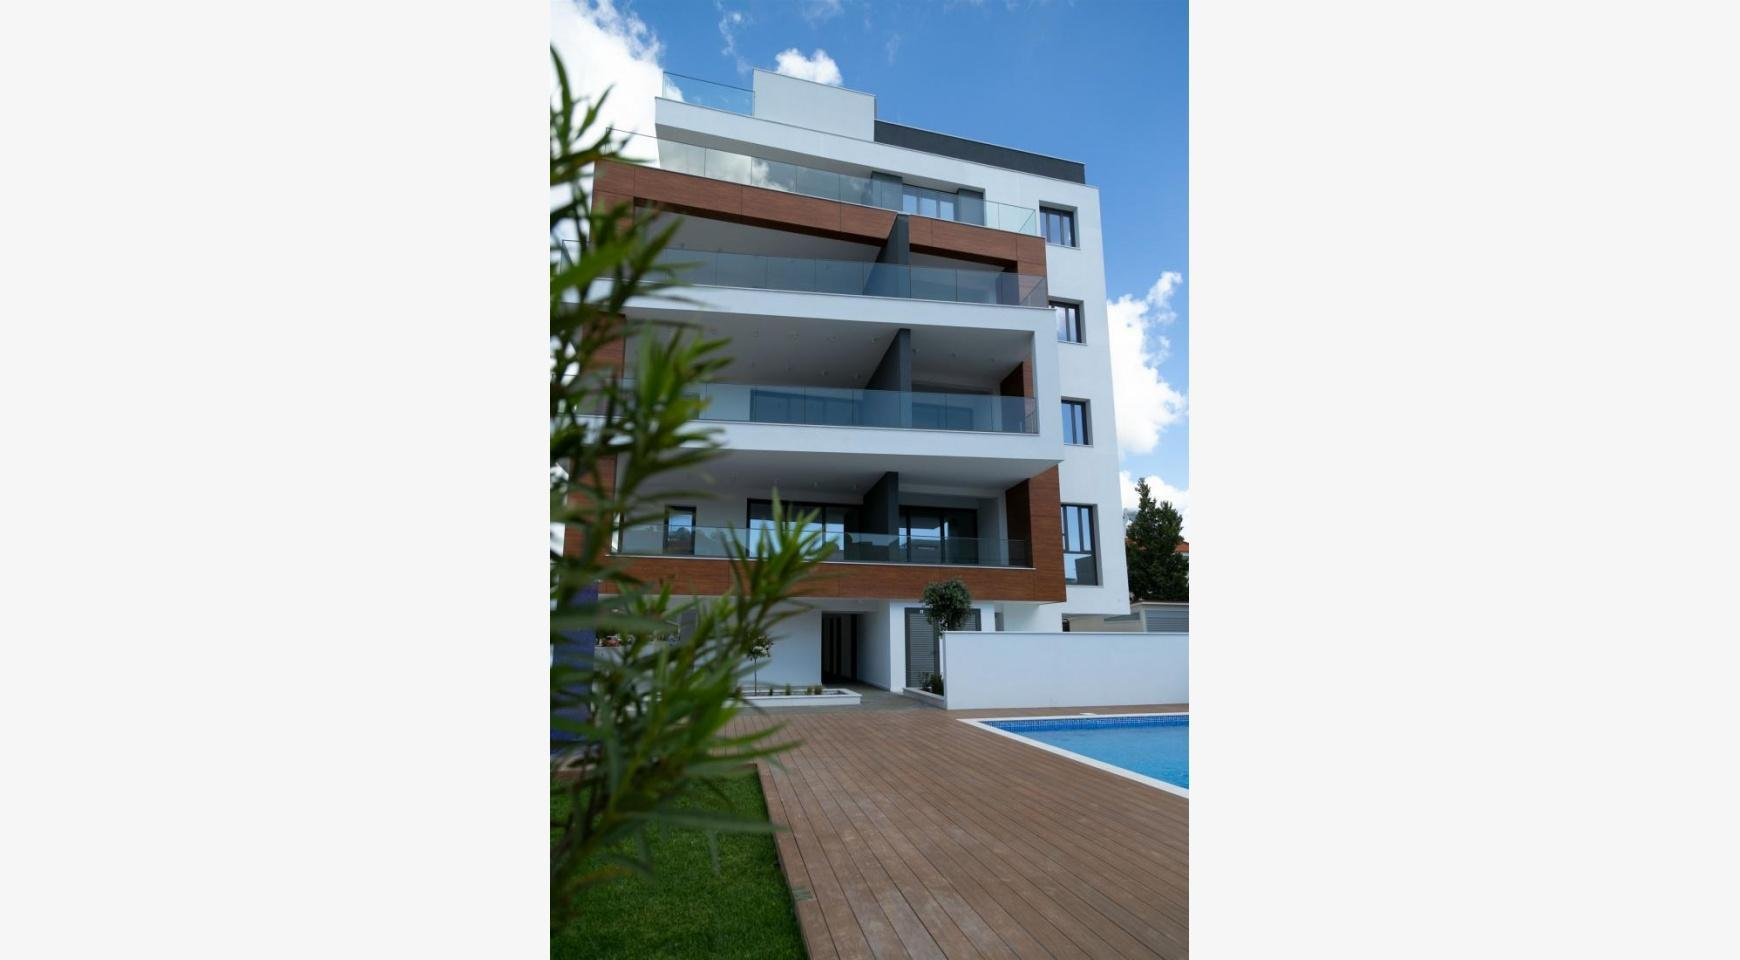 Malibu Residence. Luxury 3 Bedroom Penthouse 401 with Private Swimming Pool - 4